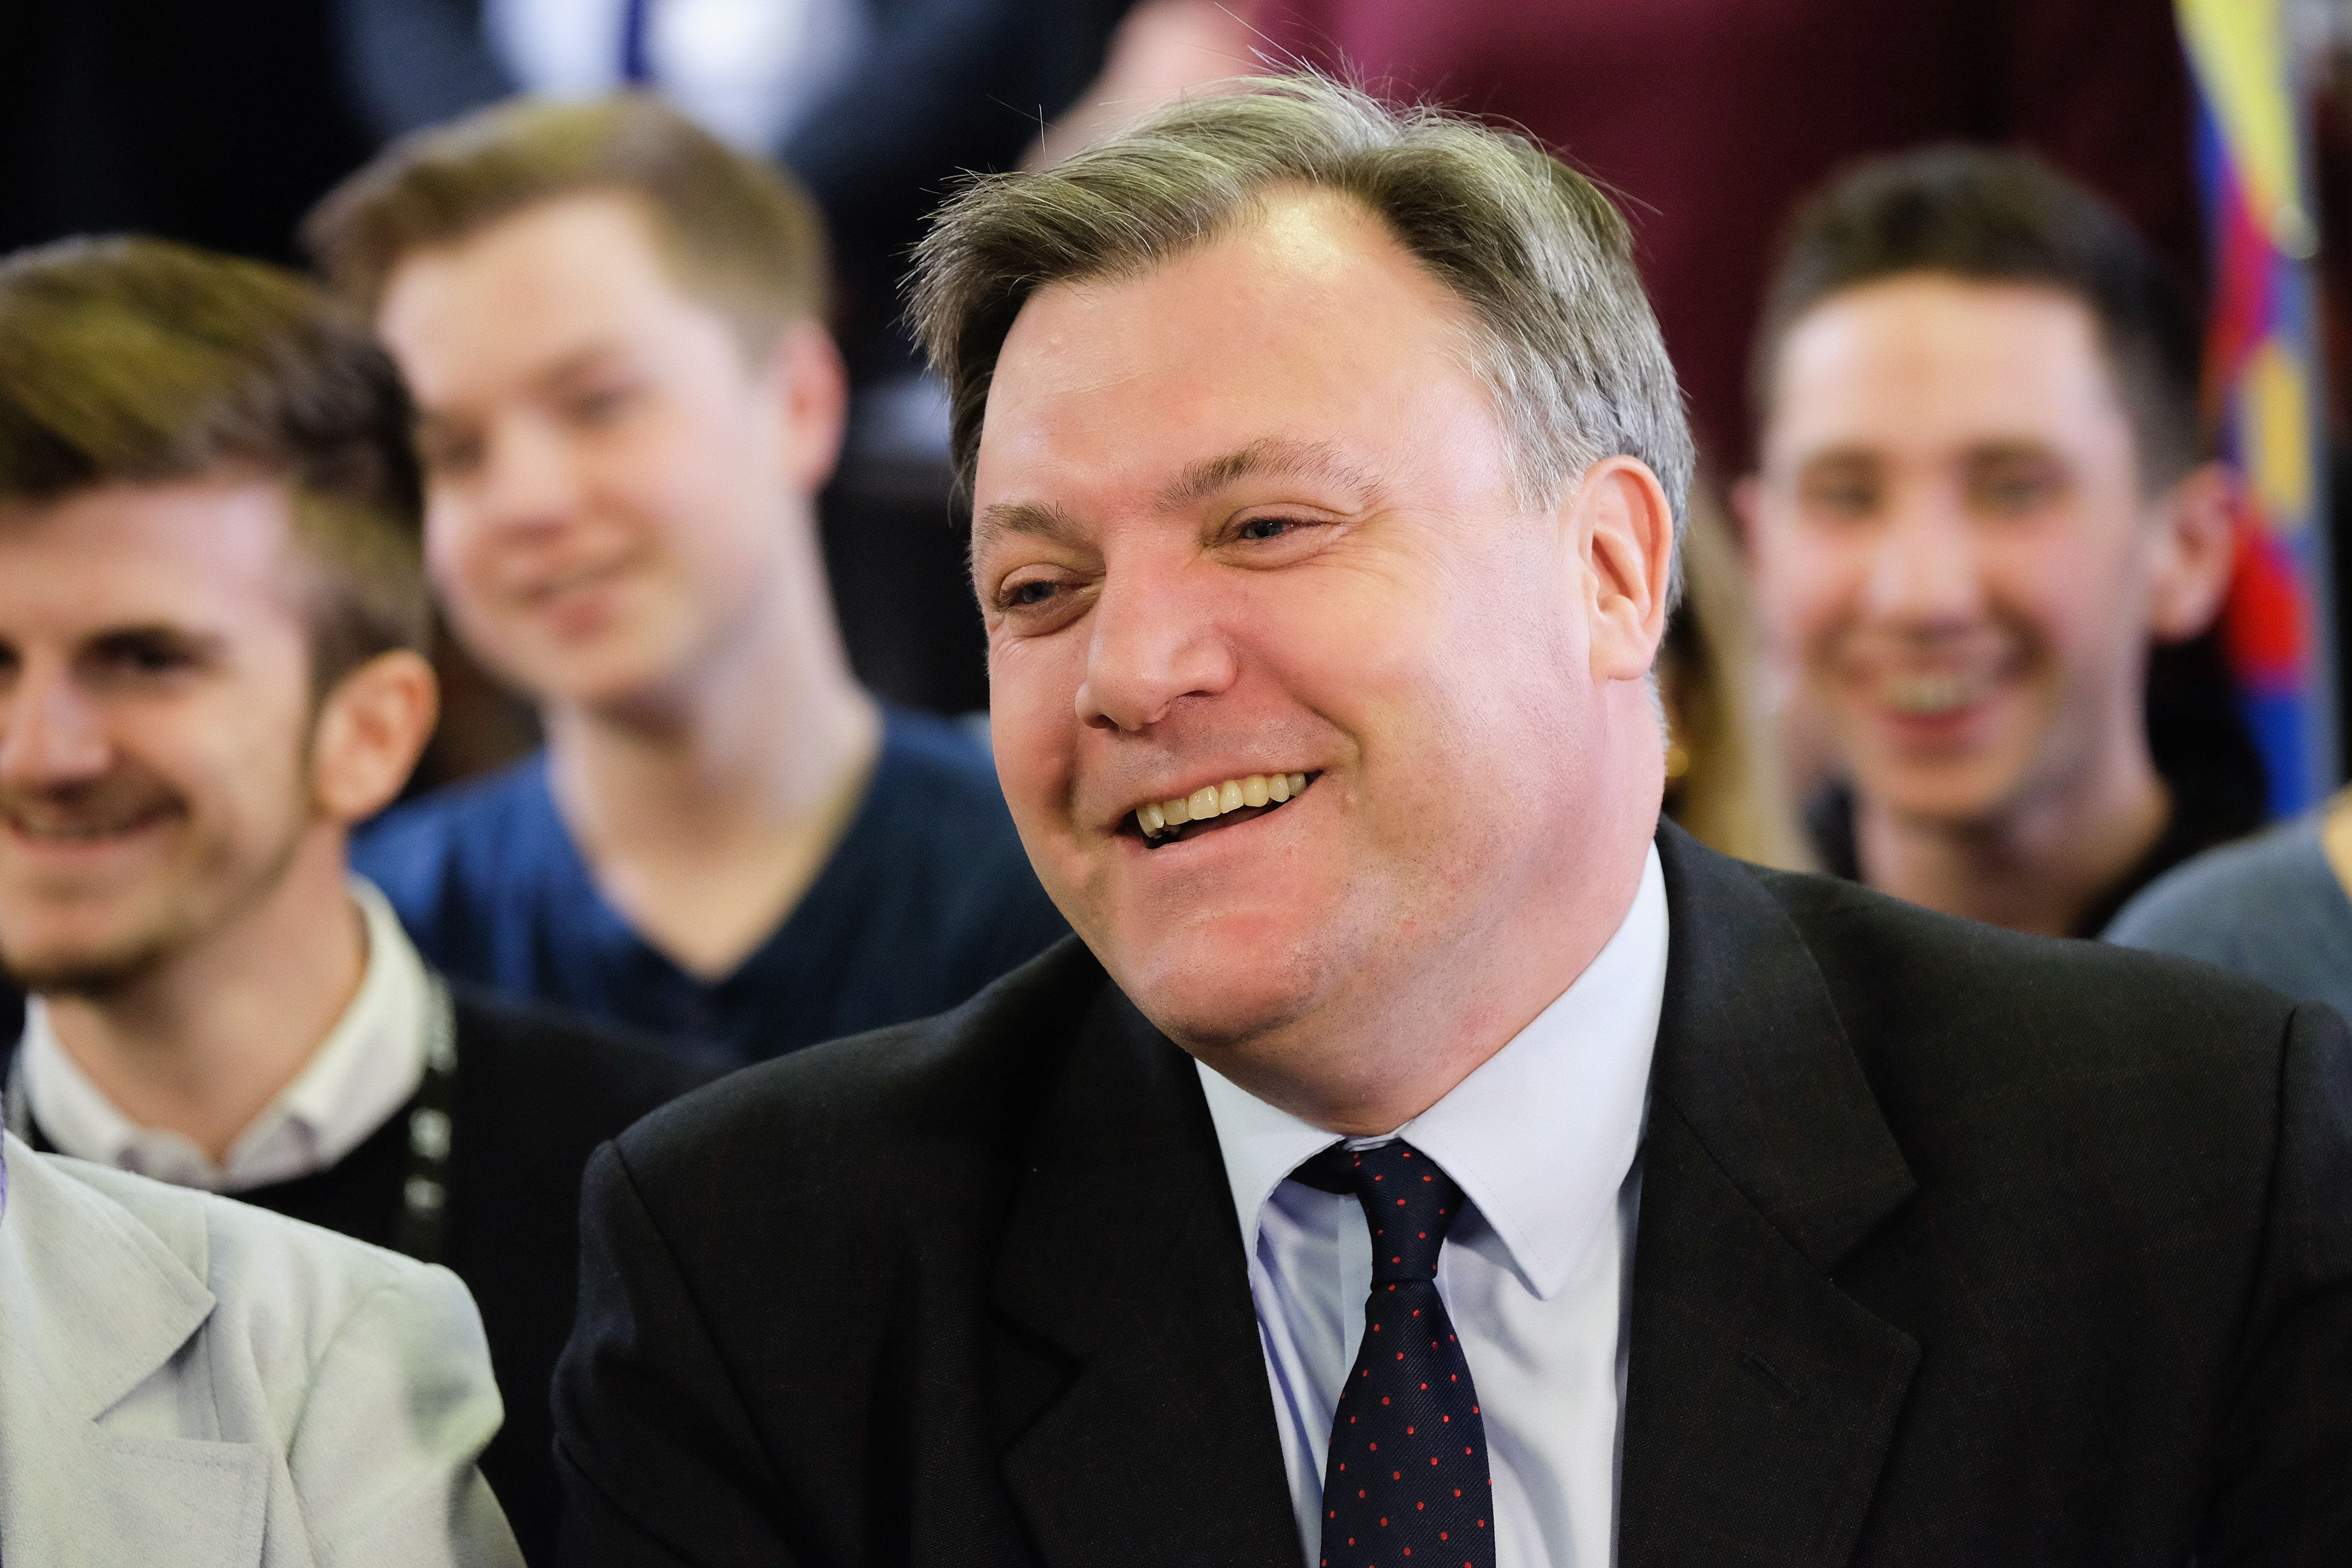 Ed Balls Day 2017 Is In Full Swing - But This Year's Celebrations Seem Rather